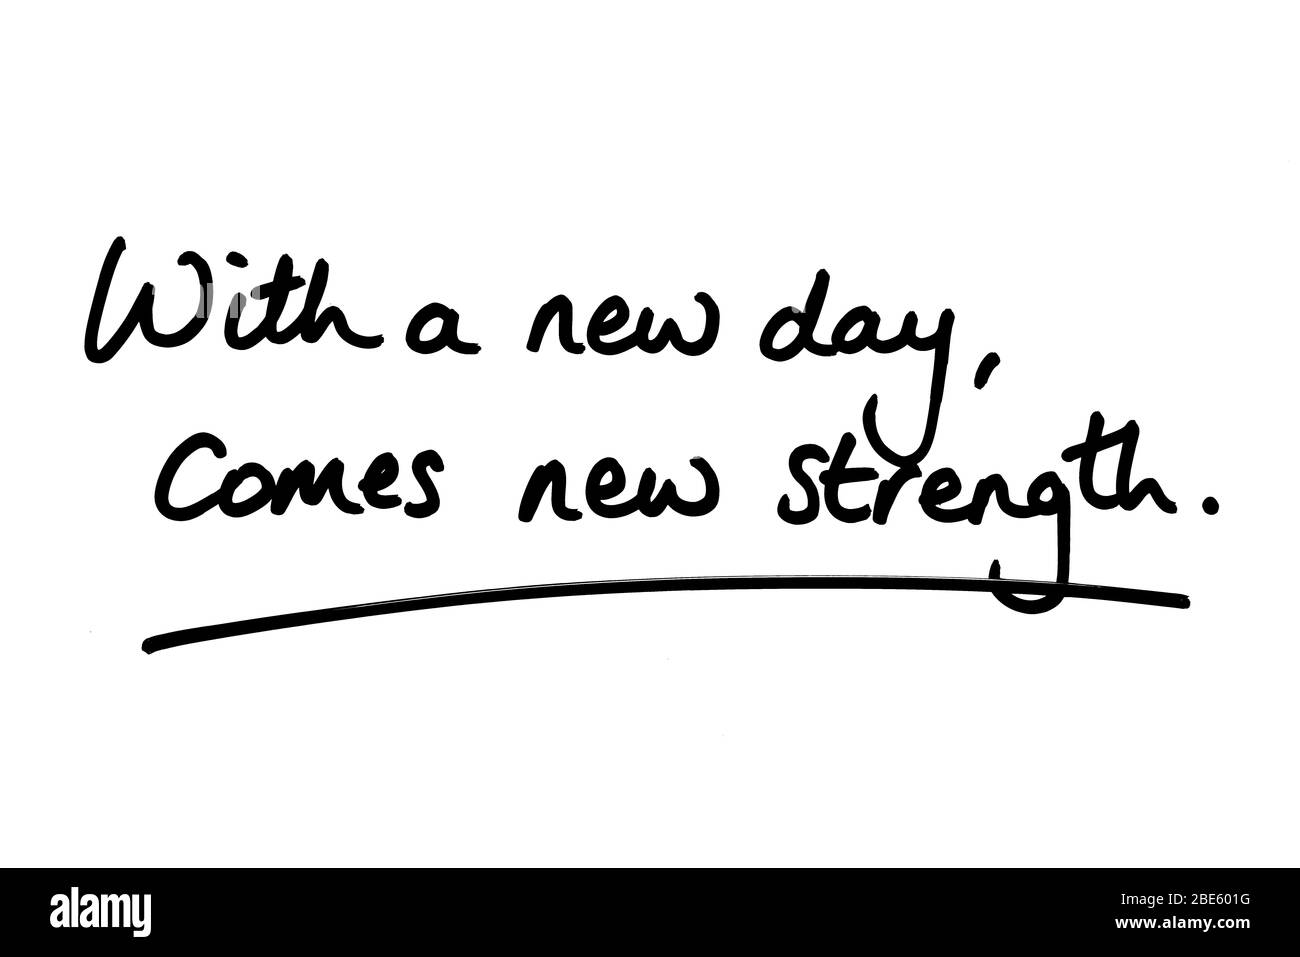 With a New Day Comes New Strength, handwritten on a white background. Stock Photo